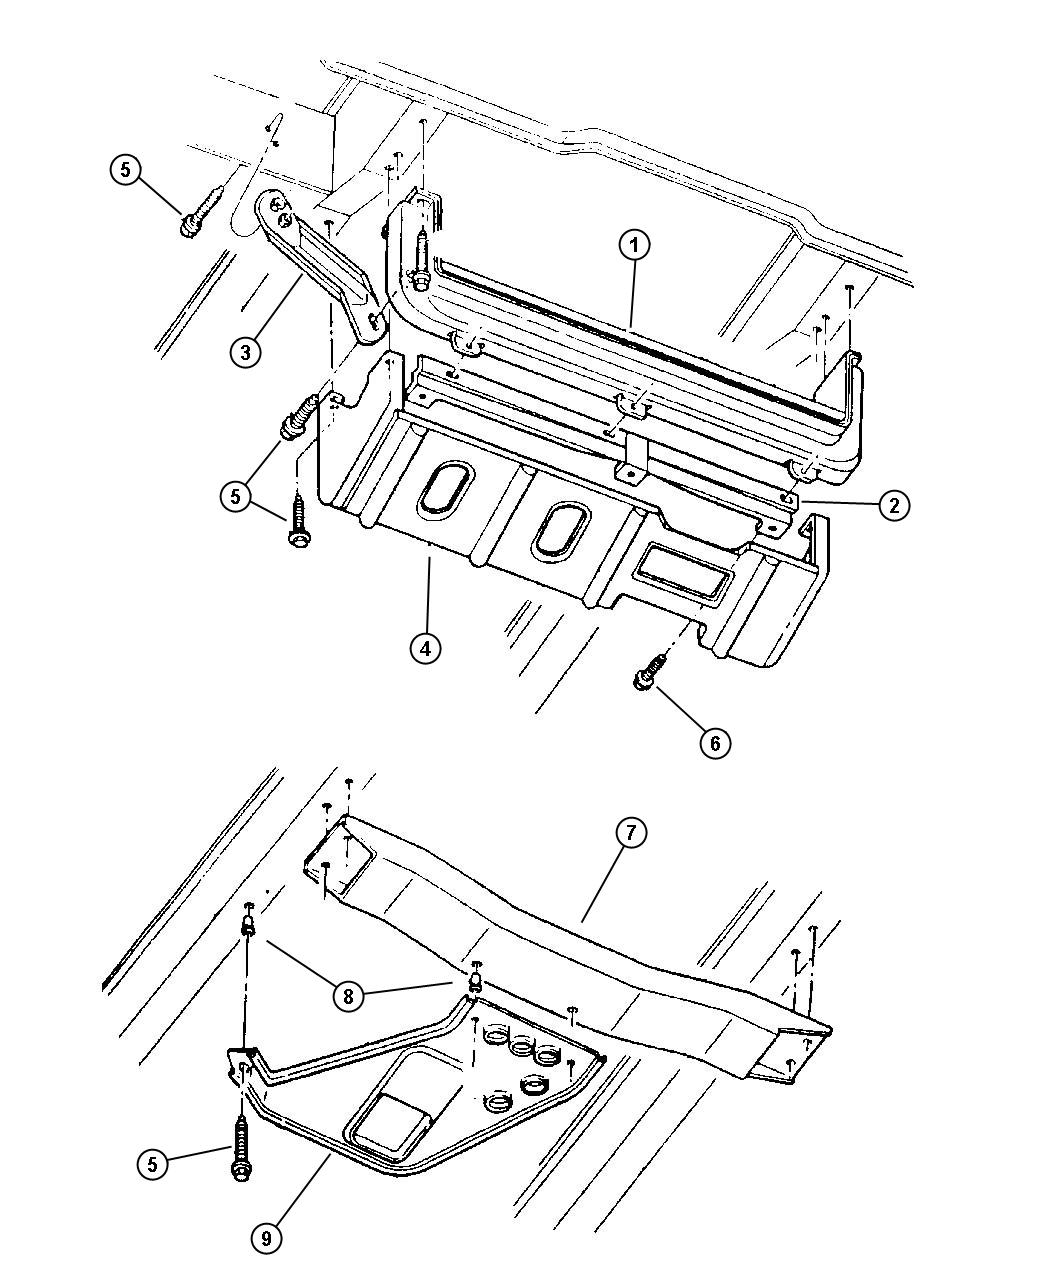 nos 1993 1998 jeep grand cherokee l r lower radiator core support Jeep Cherokee Radiator fits 1993 1998 jeep grand cherokee item 3 shows location on one side